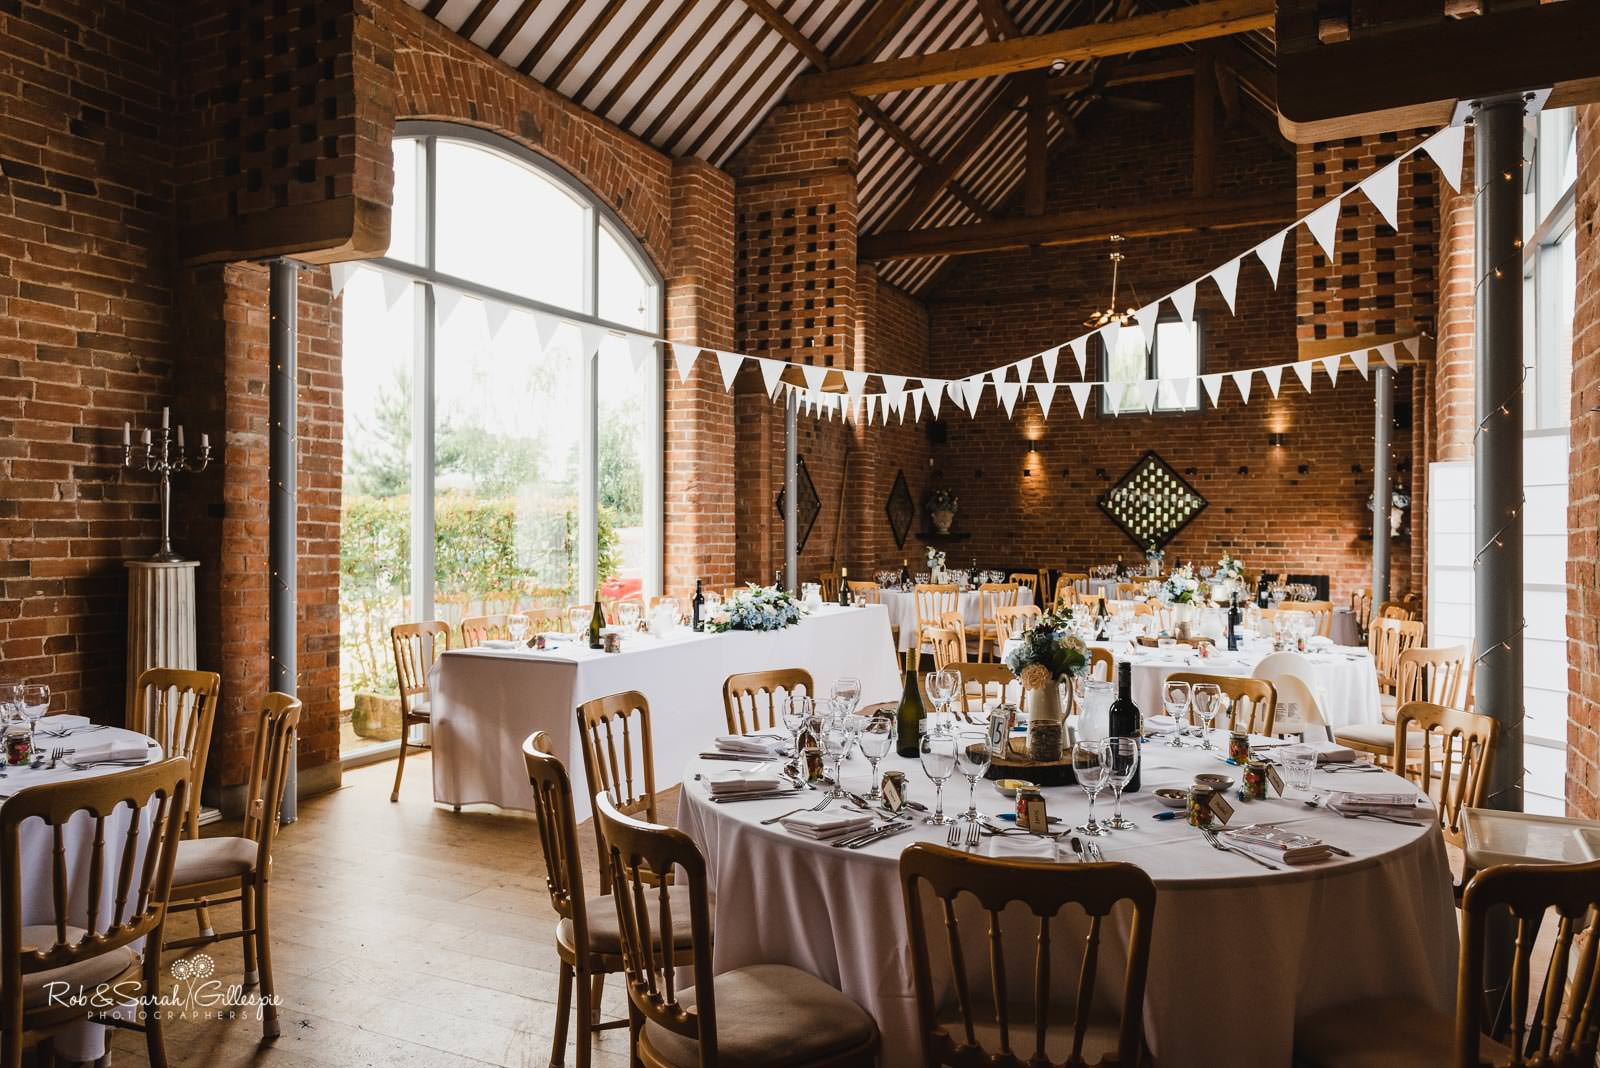 Swallows Nest Barn set up for wedding breakfast